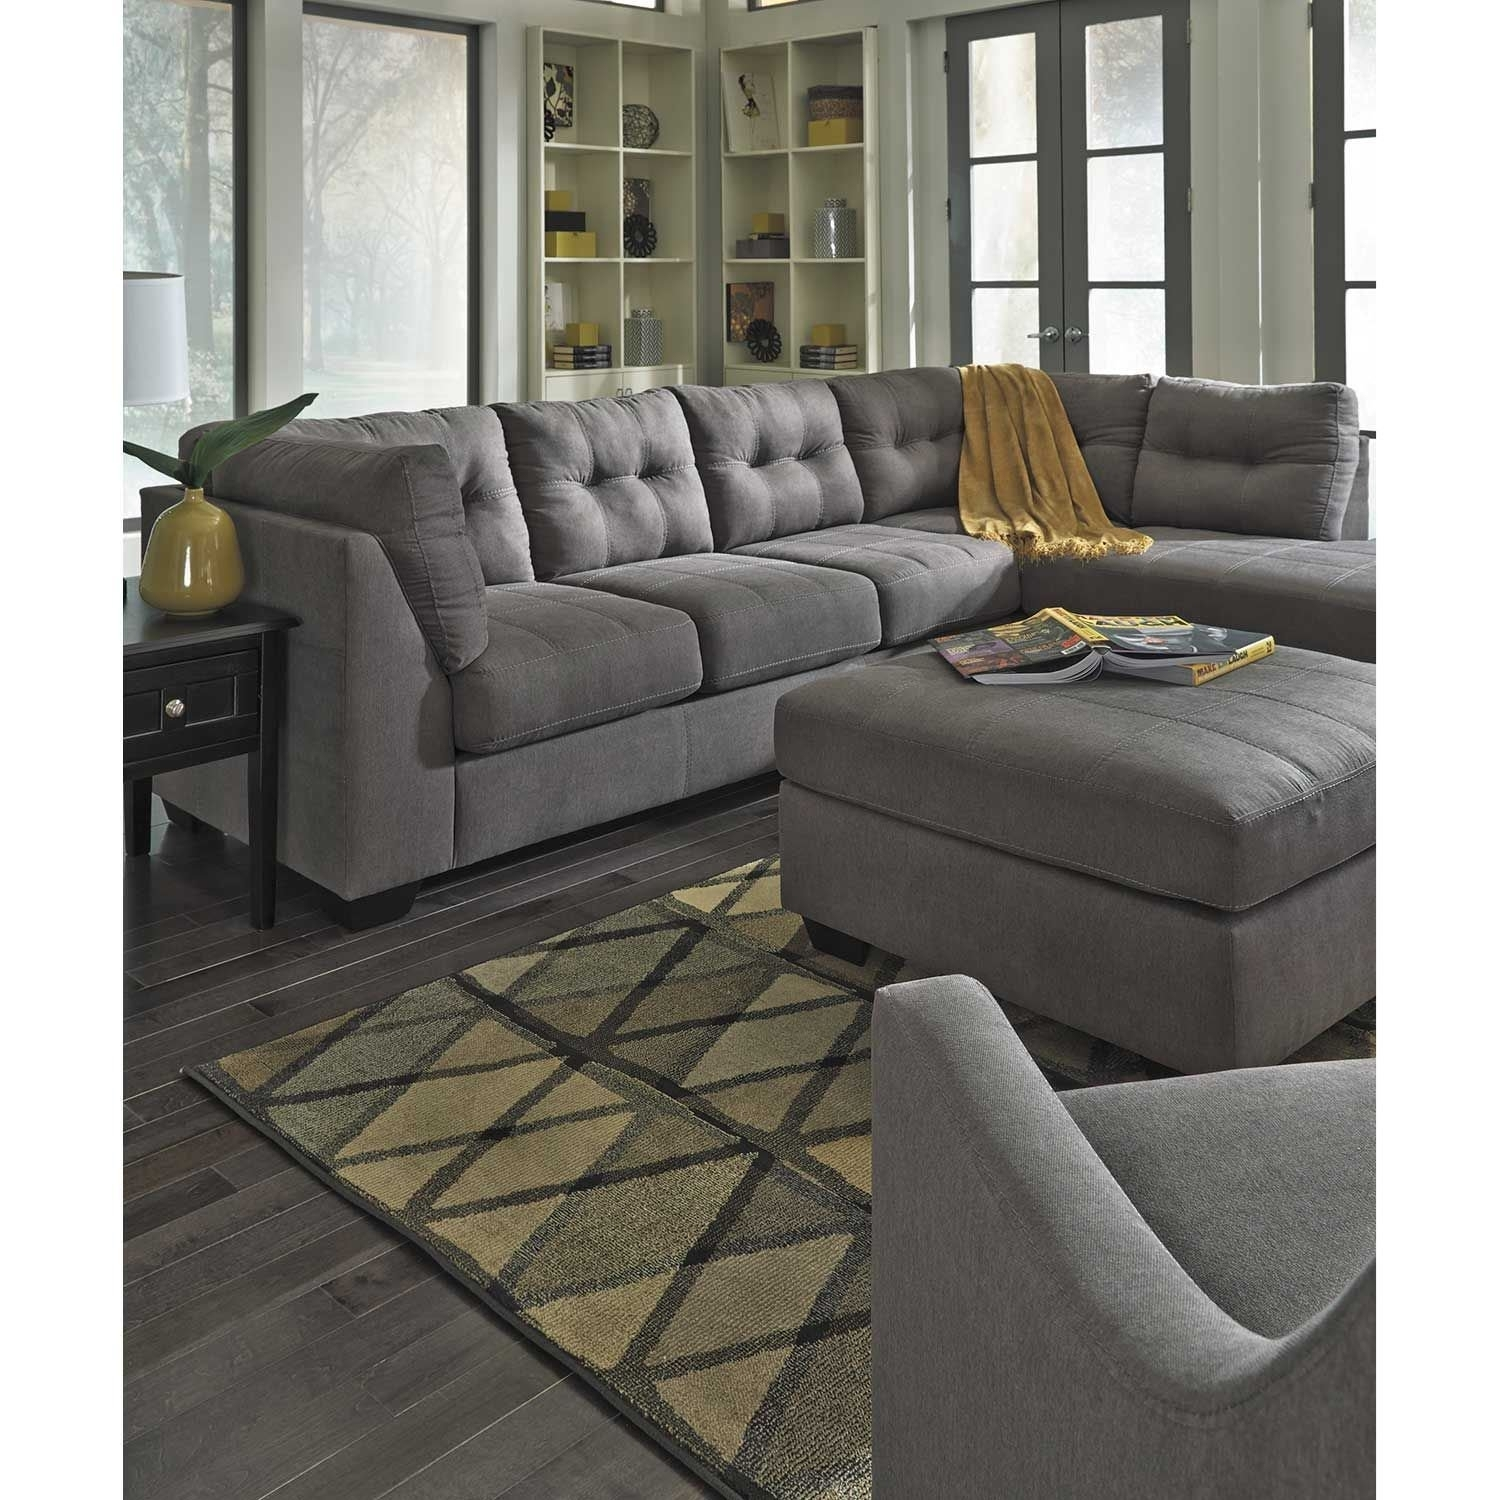 Maier Charcoal 2 Piece Sectional With Laf Chaise | 4520016/67 With Regard To Arrowmask 2 Piece Sectionals With Laf Chaise (Image 13 of 25)